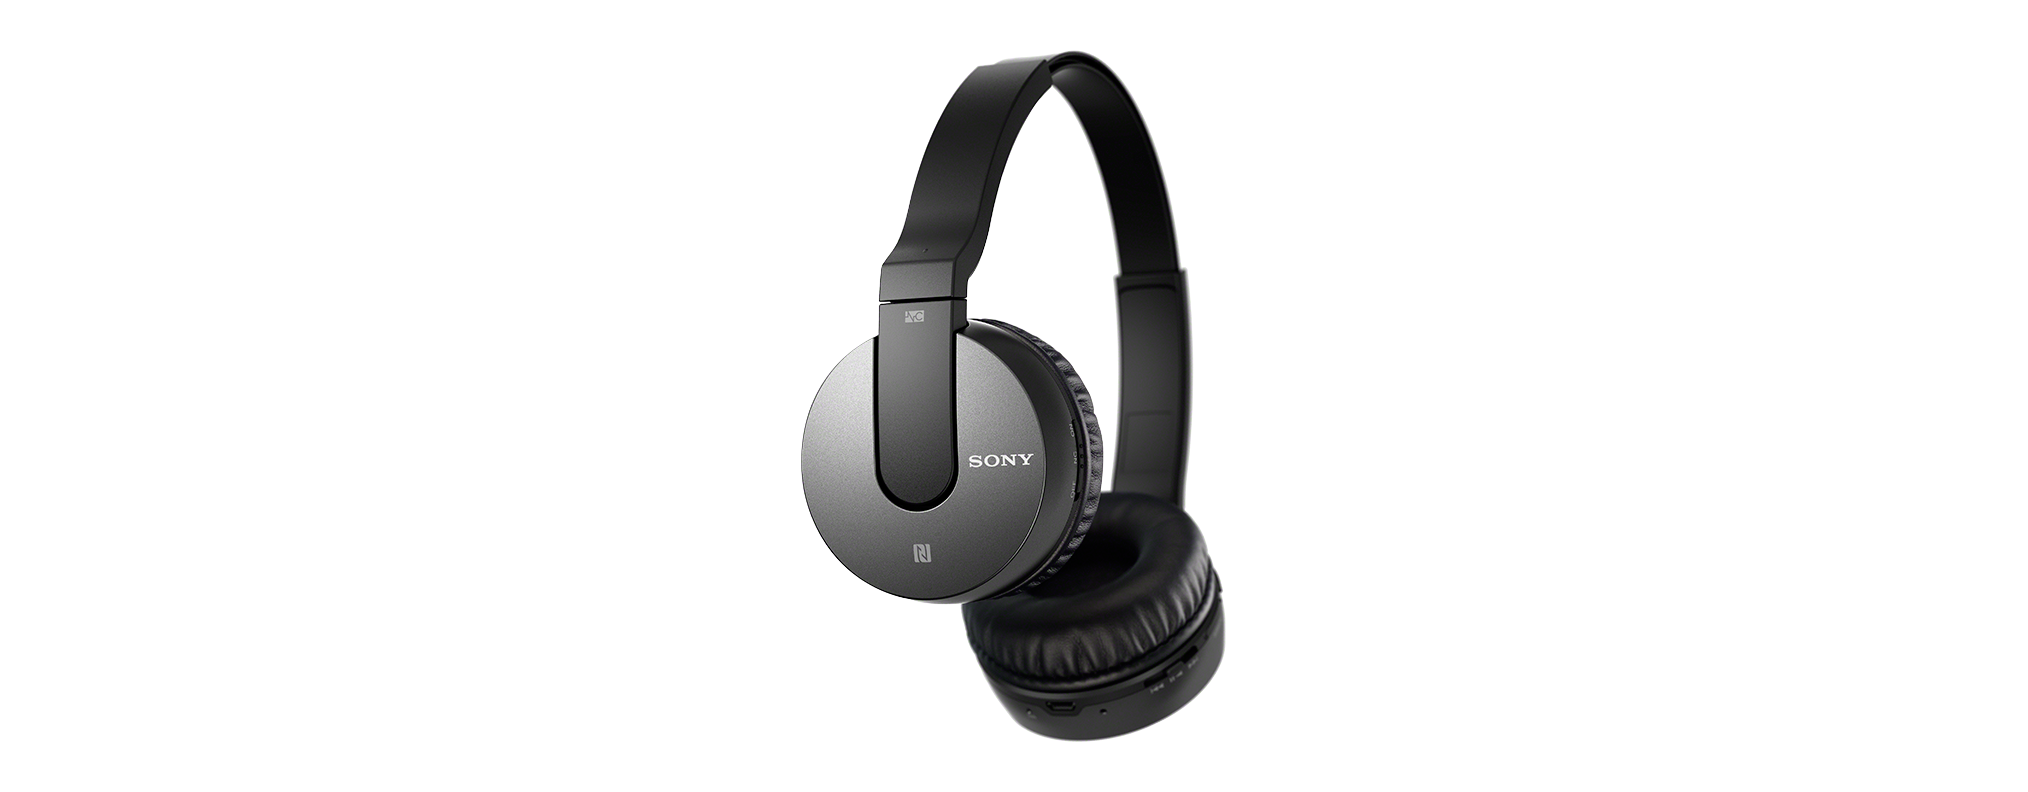 appairer casque sony mdr zx550bn